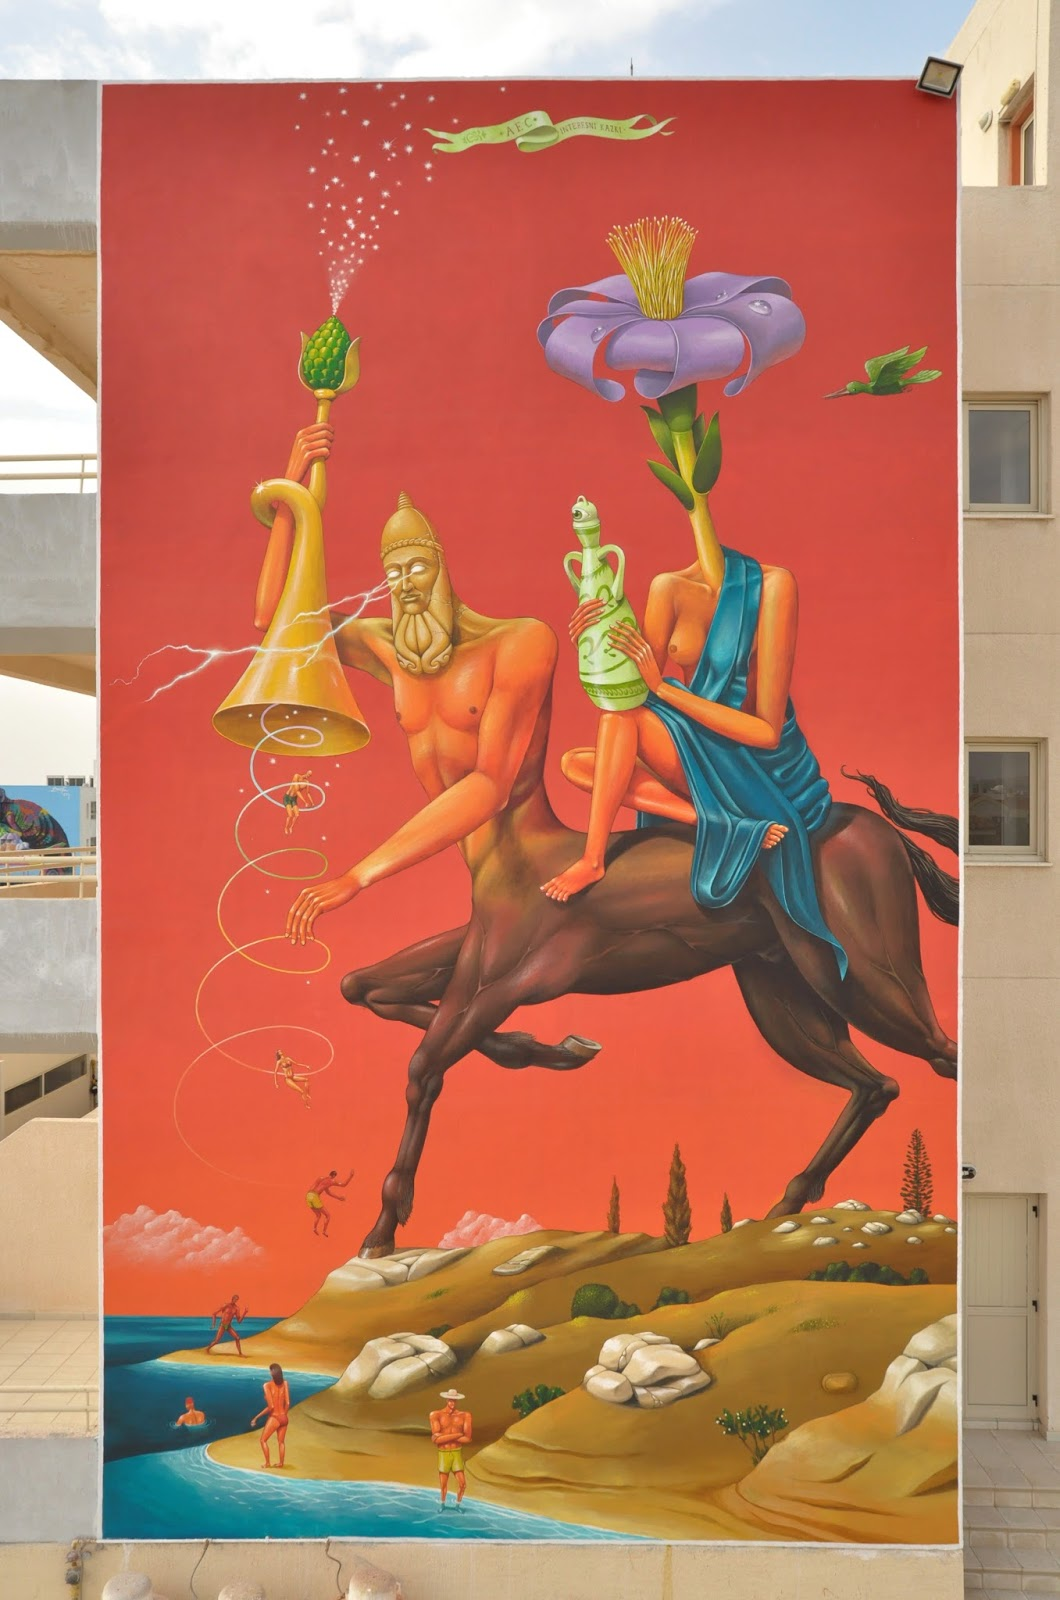 interesni-kazki-new-mural-in-ayia-napa-cyprus-02